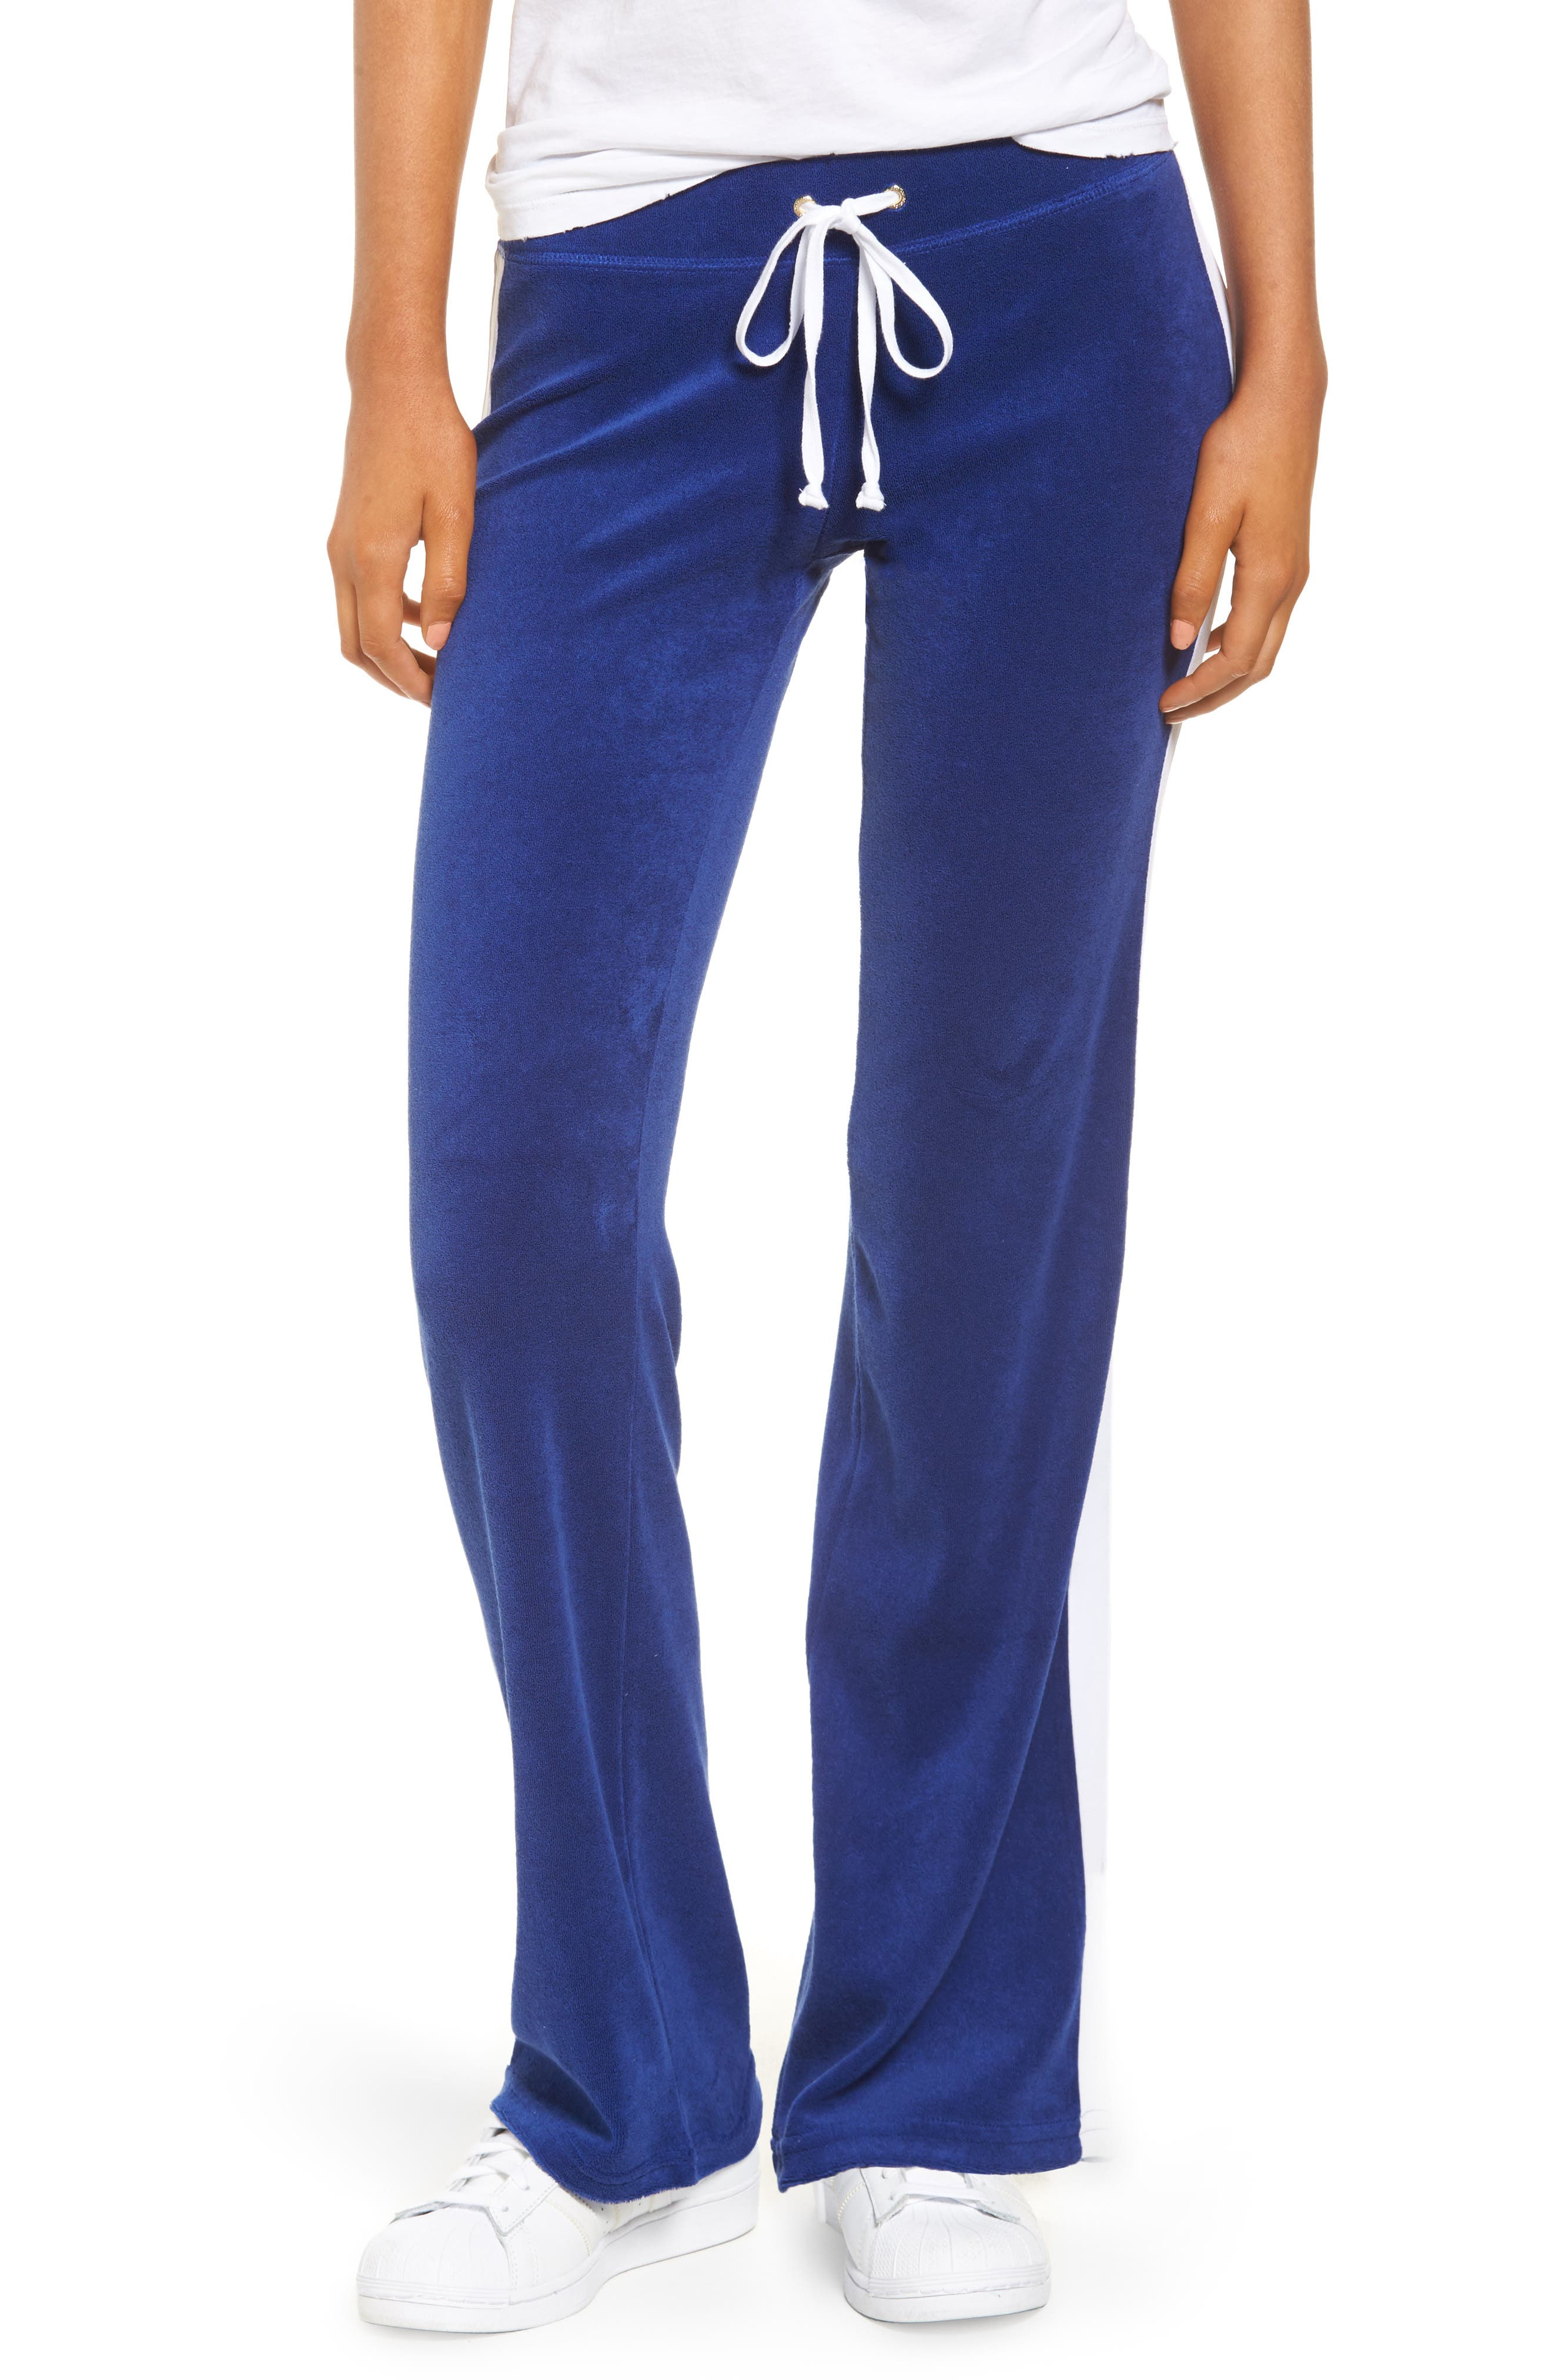 Venice Beach Del Ray Microterry Pants,                         Main,                         color, 406